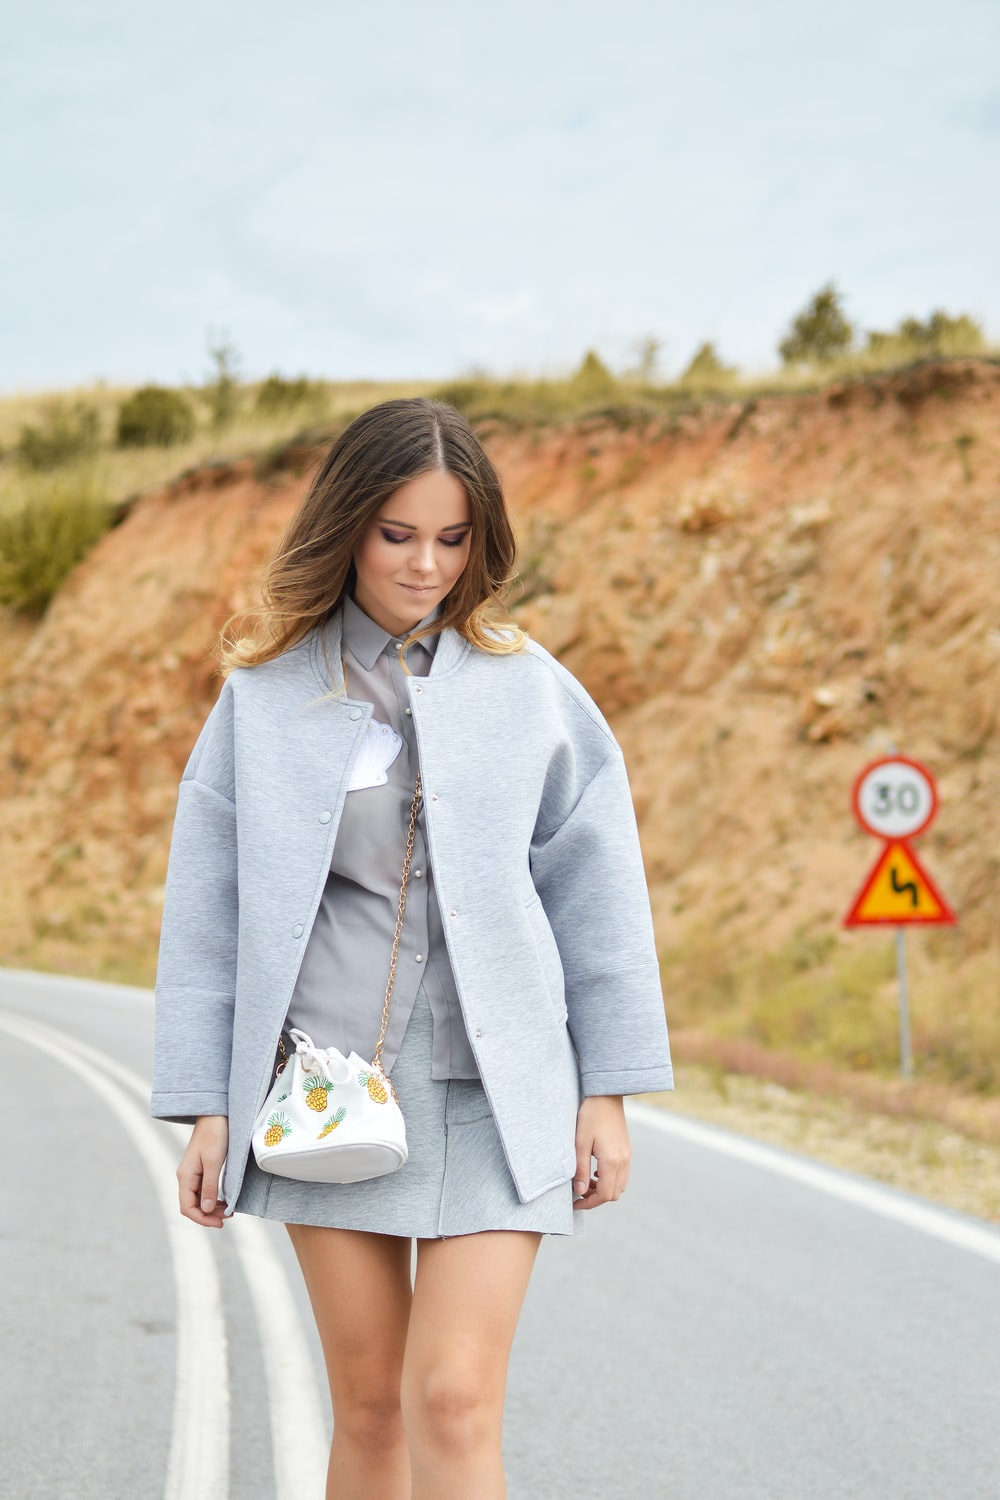 woman in gray coat and white sling bag walking on asphalt road during daytime